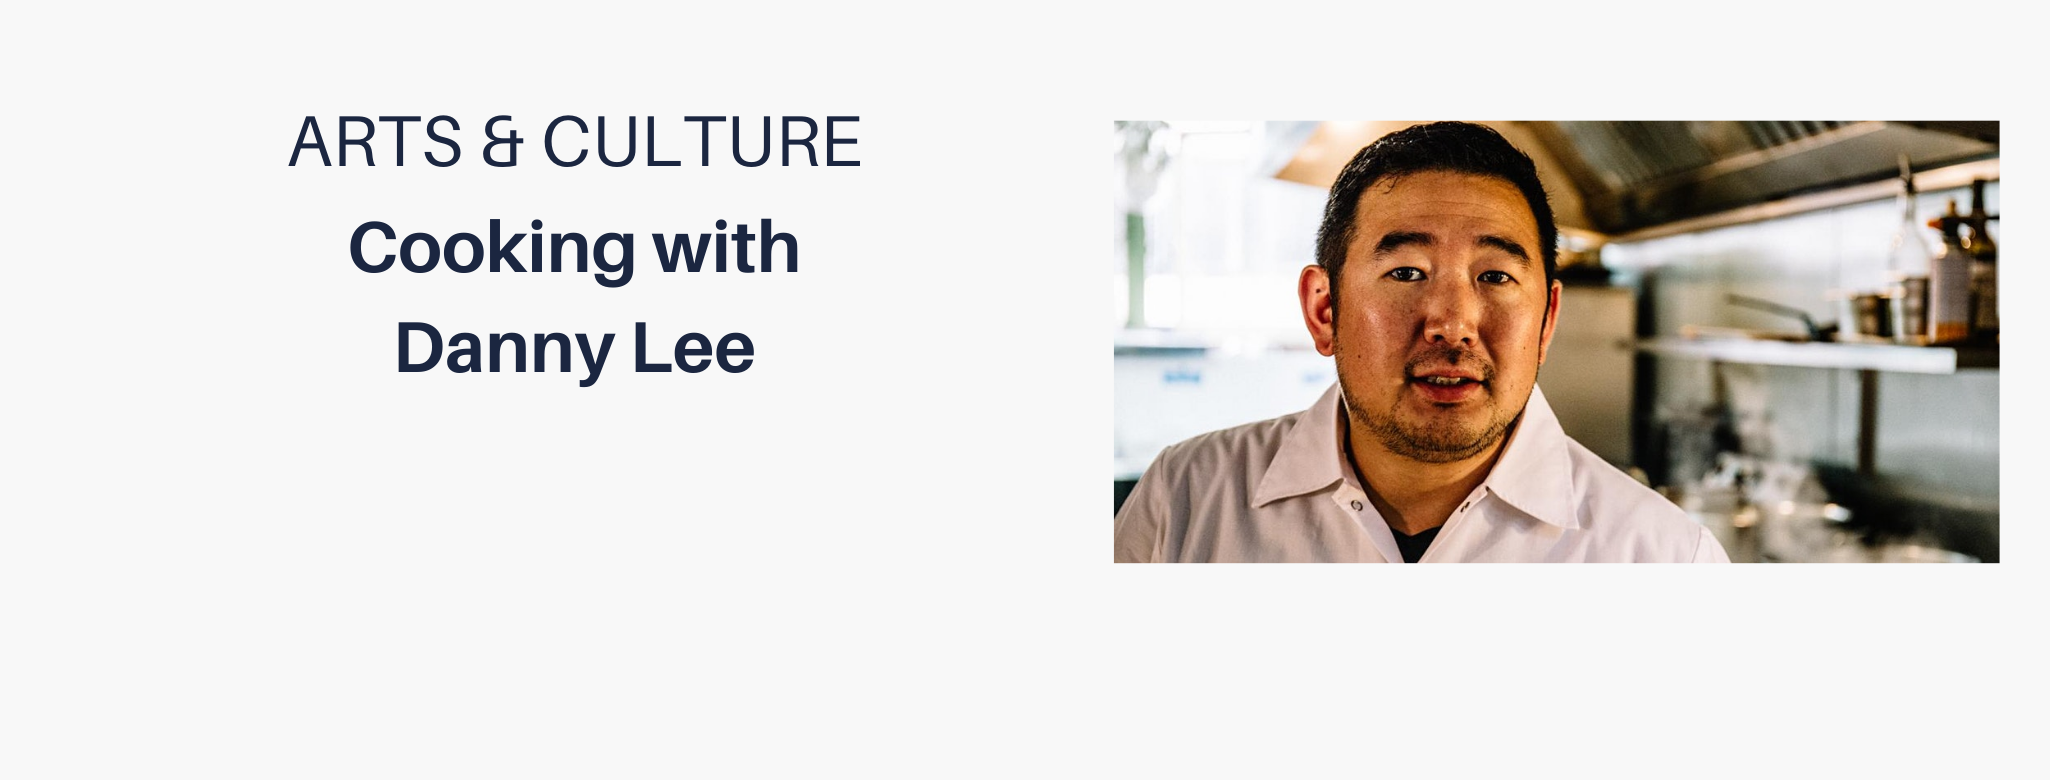 Check out Chef Danny Lee on 9/17!